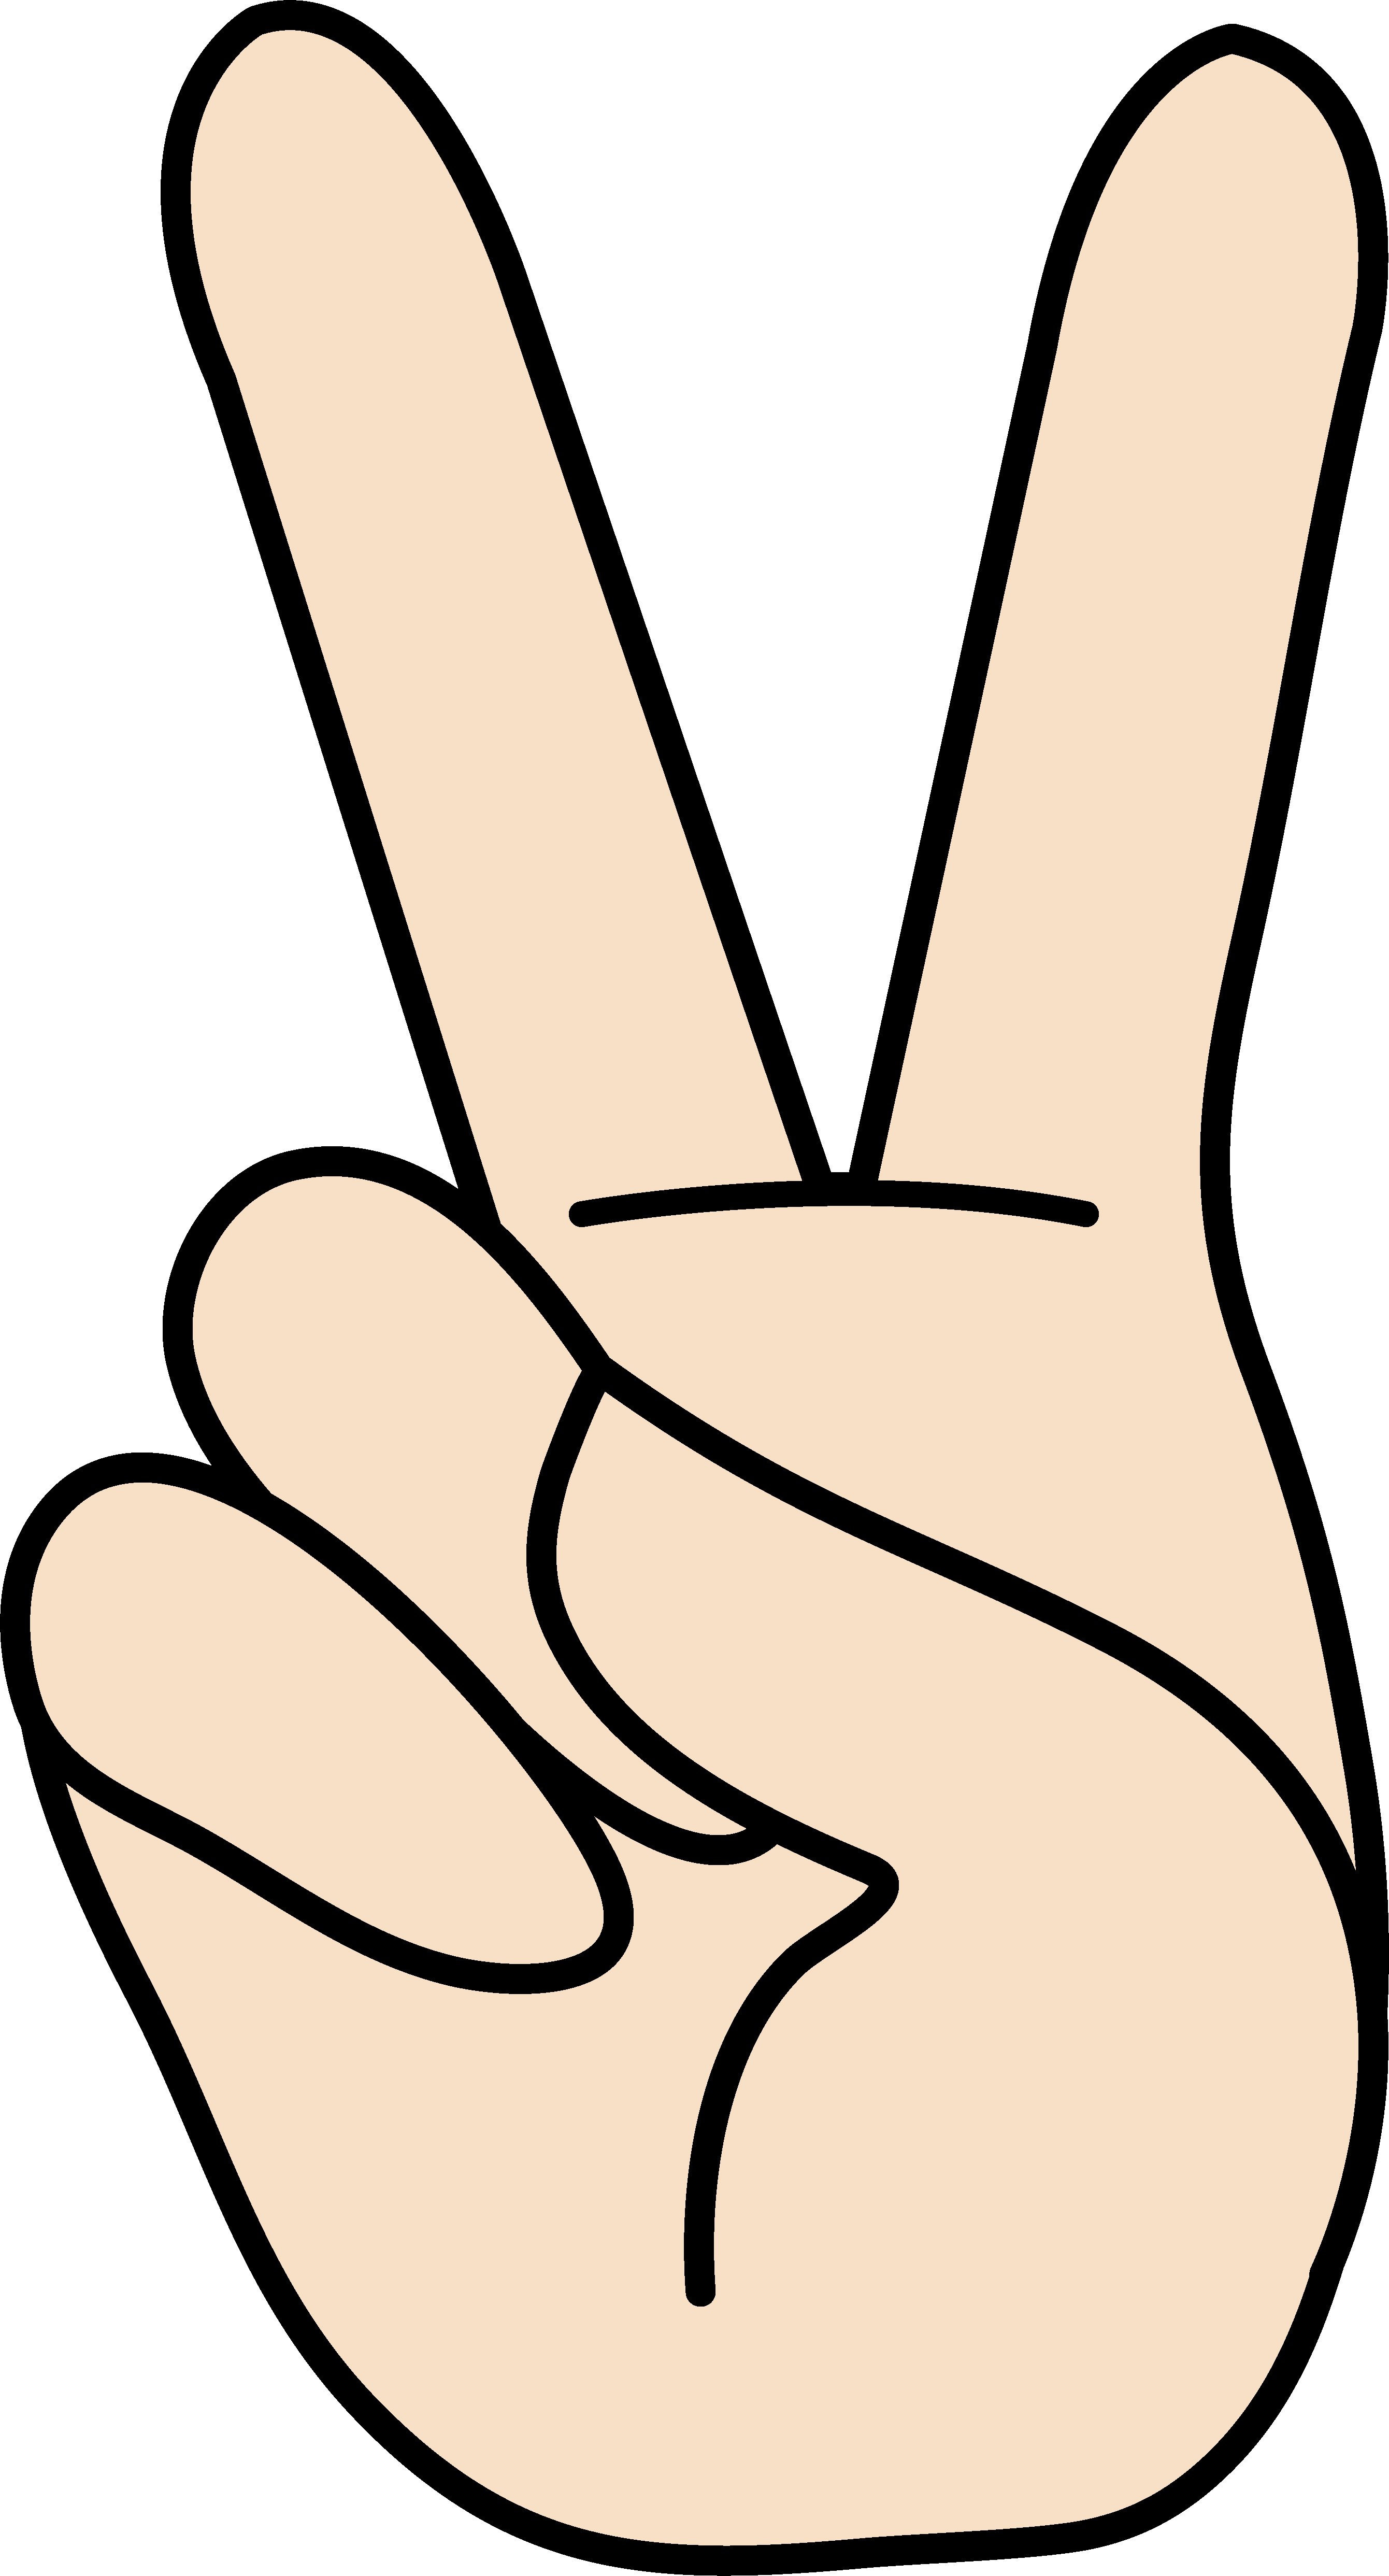 black and white Peace clipart. Free fingers download clip